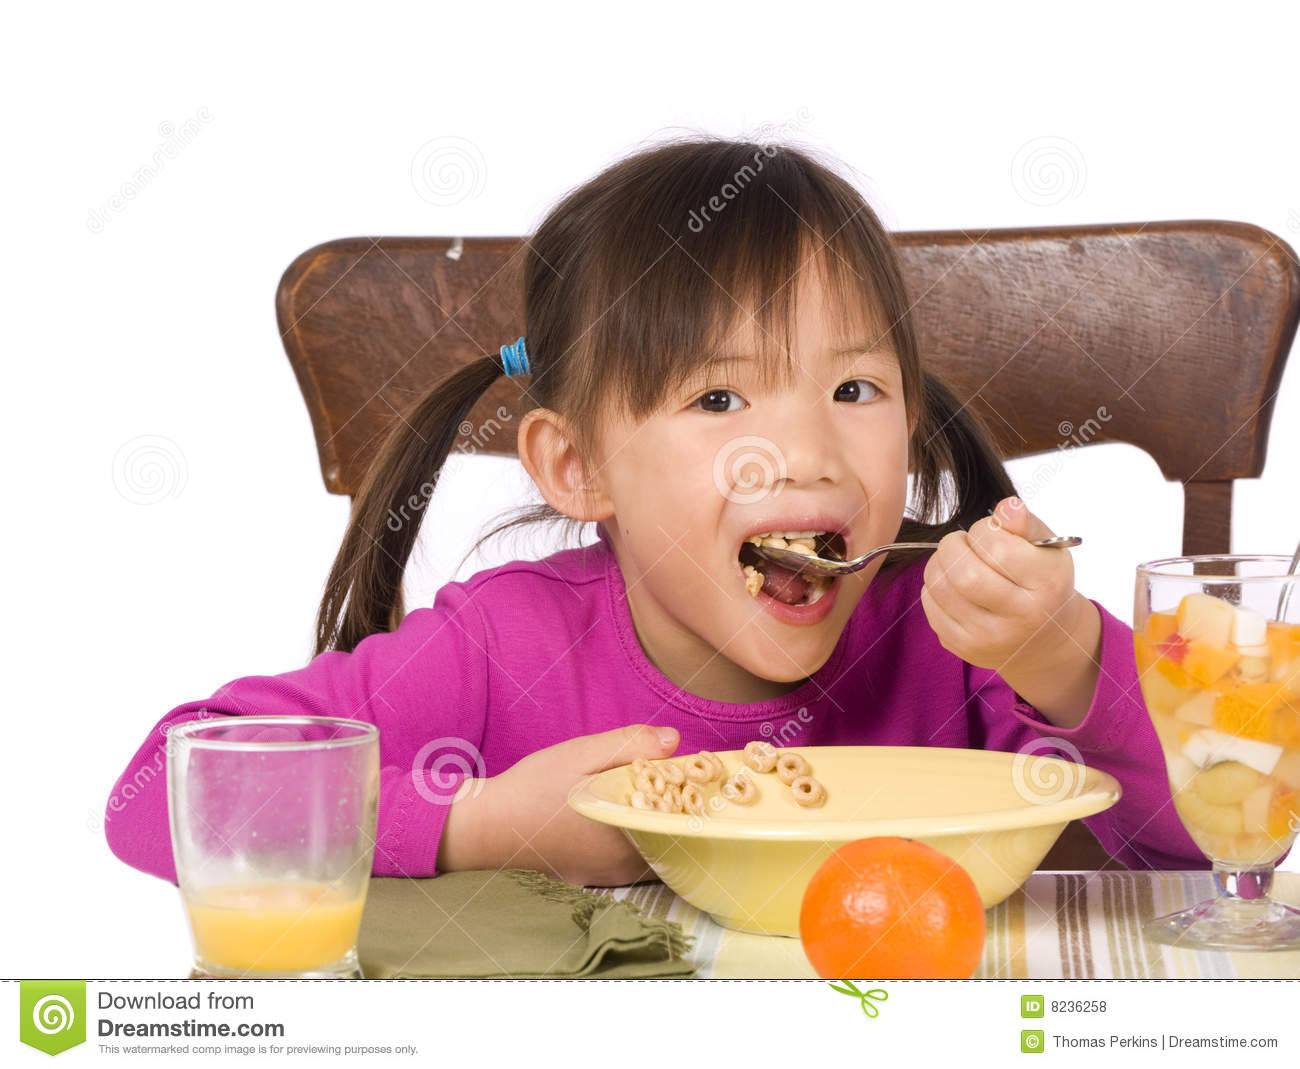 Eating Breakfast Royalty Free Stock Photos - Image: 8236258